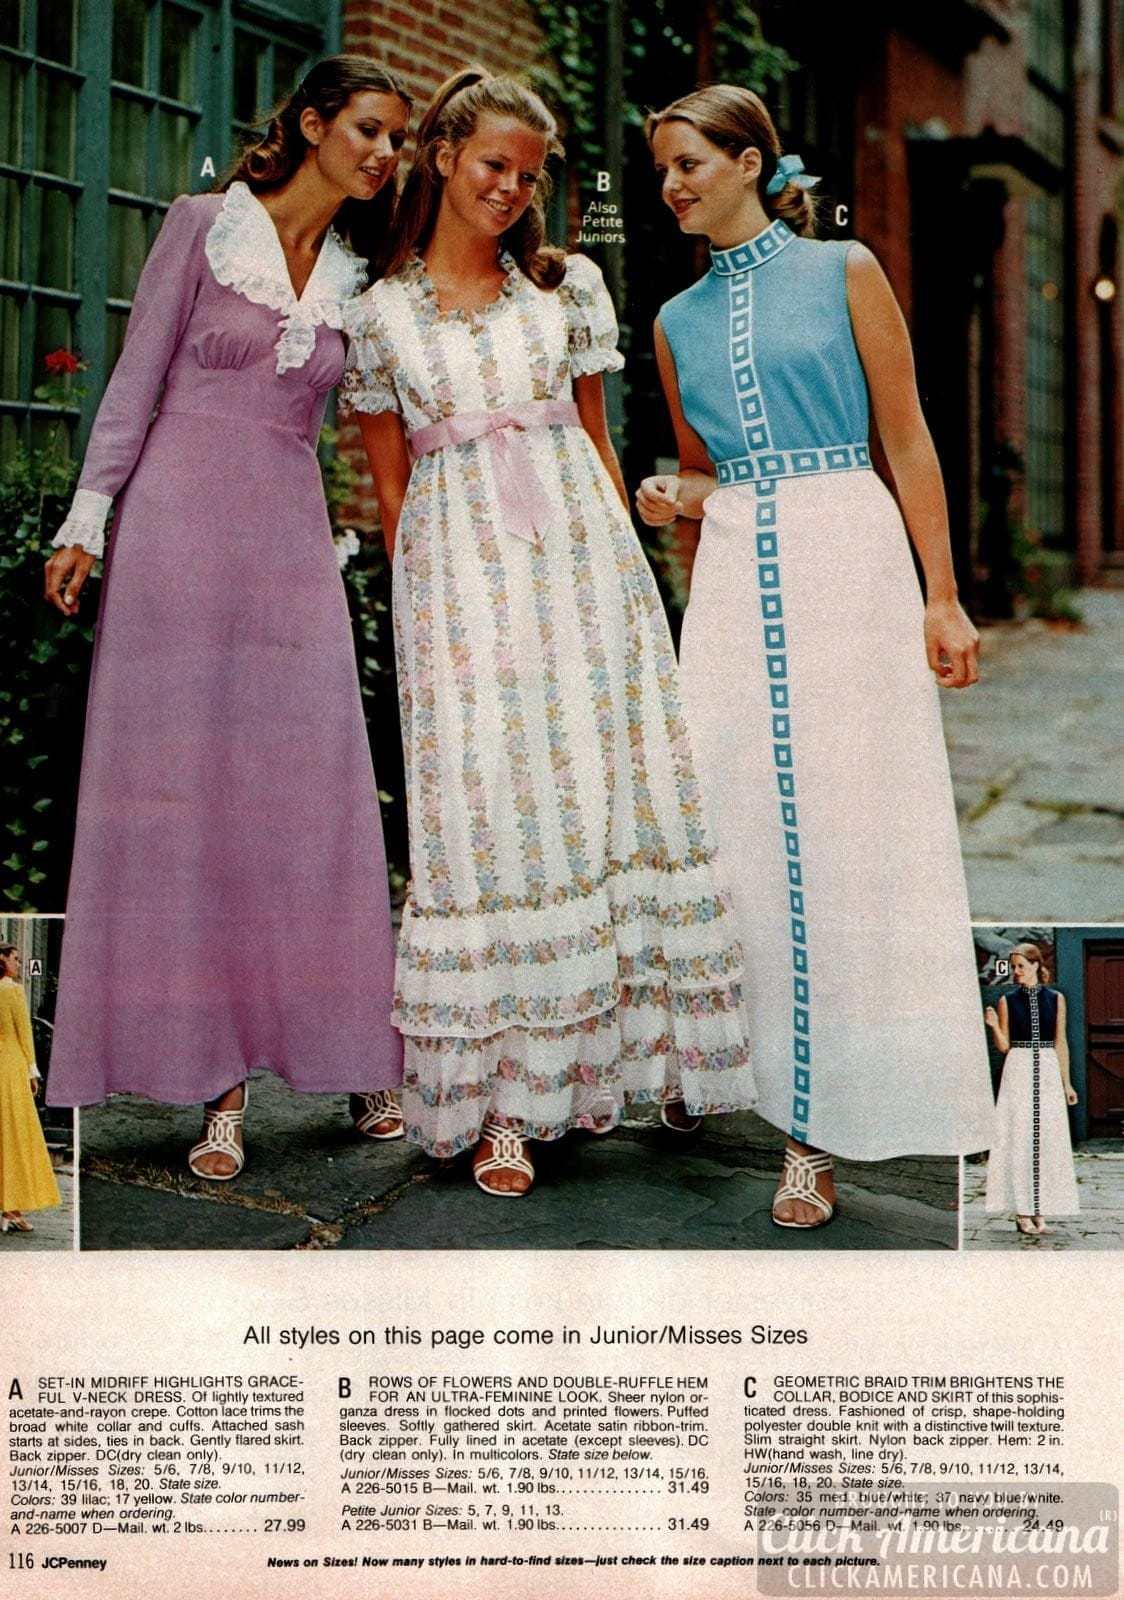 Frilly and dressy dresses from 1973 - Page includes Kim Basinger